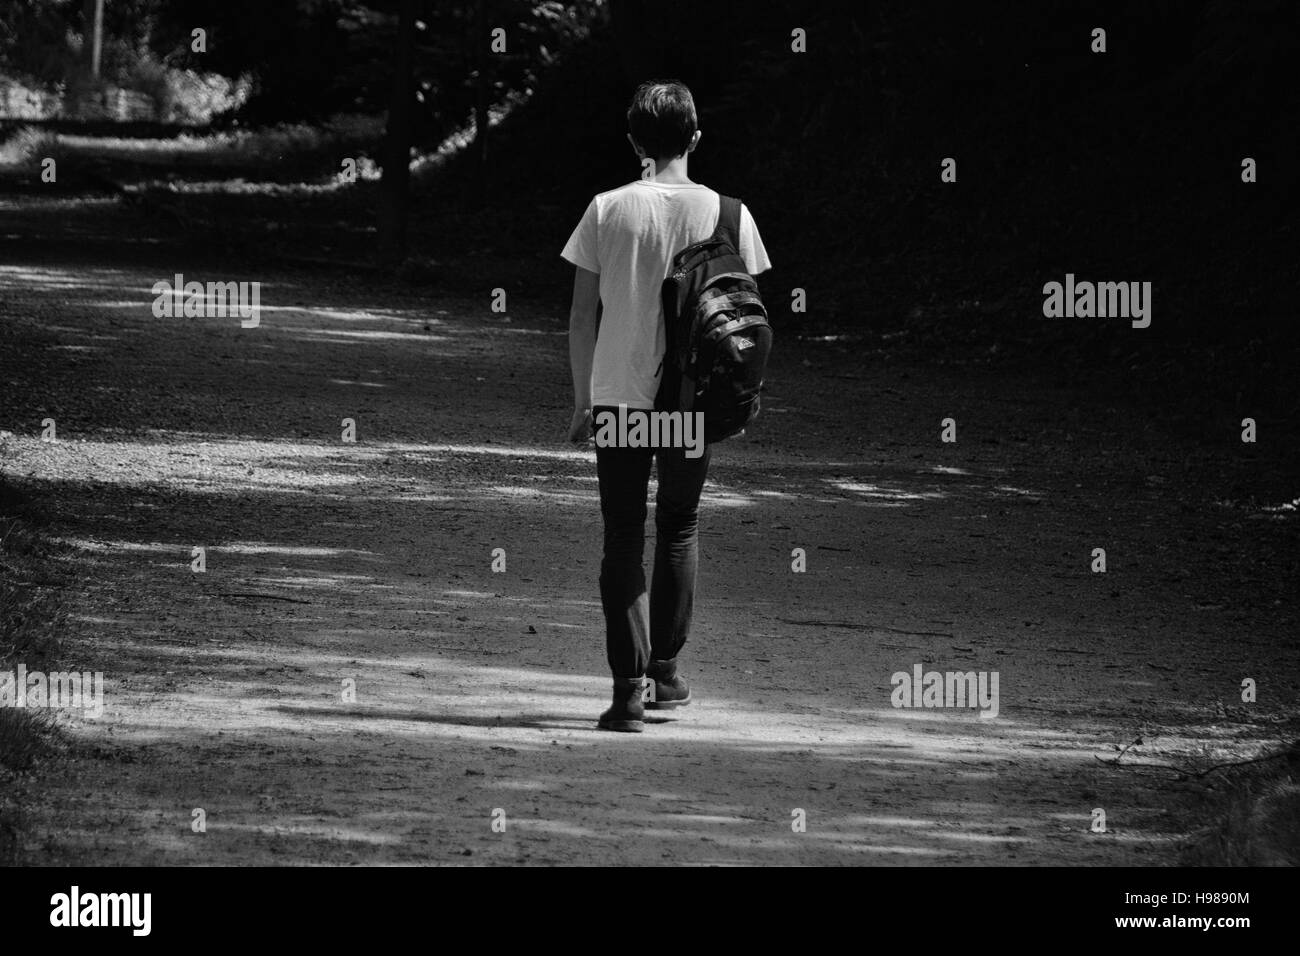 School boy walking a path with back pack in black and white - Stock Image